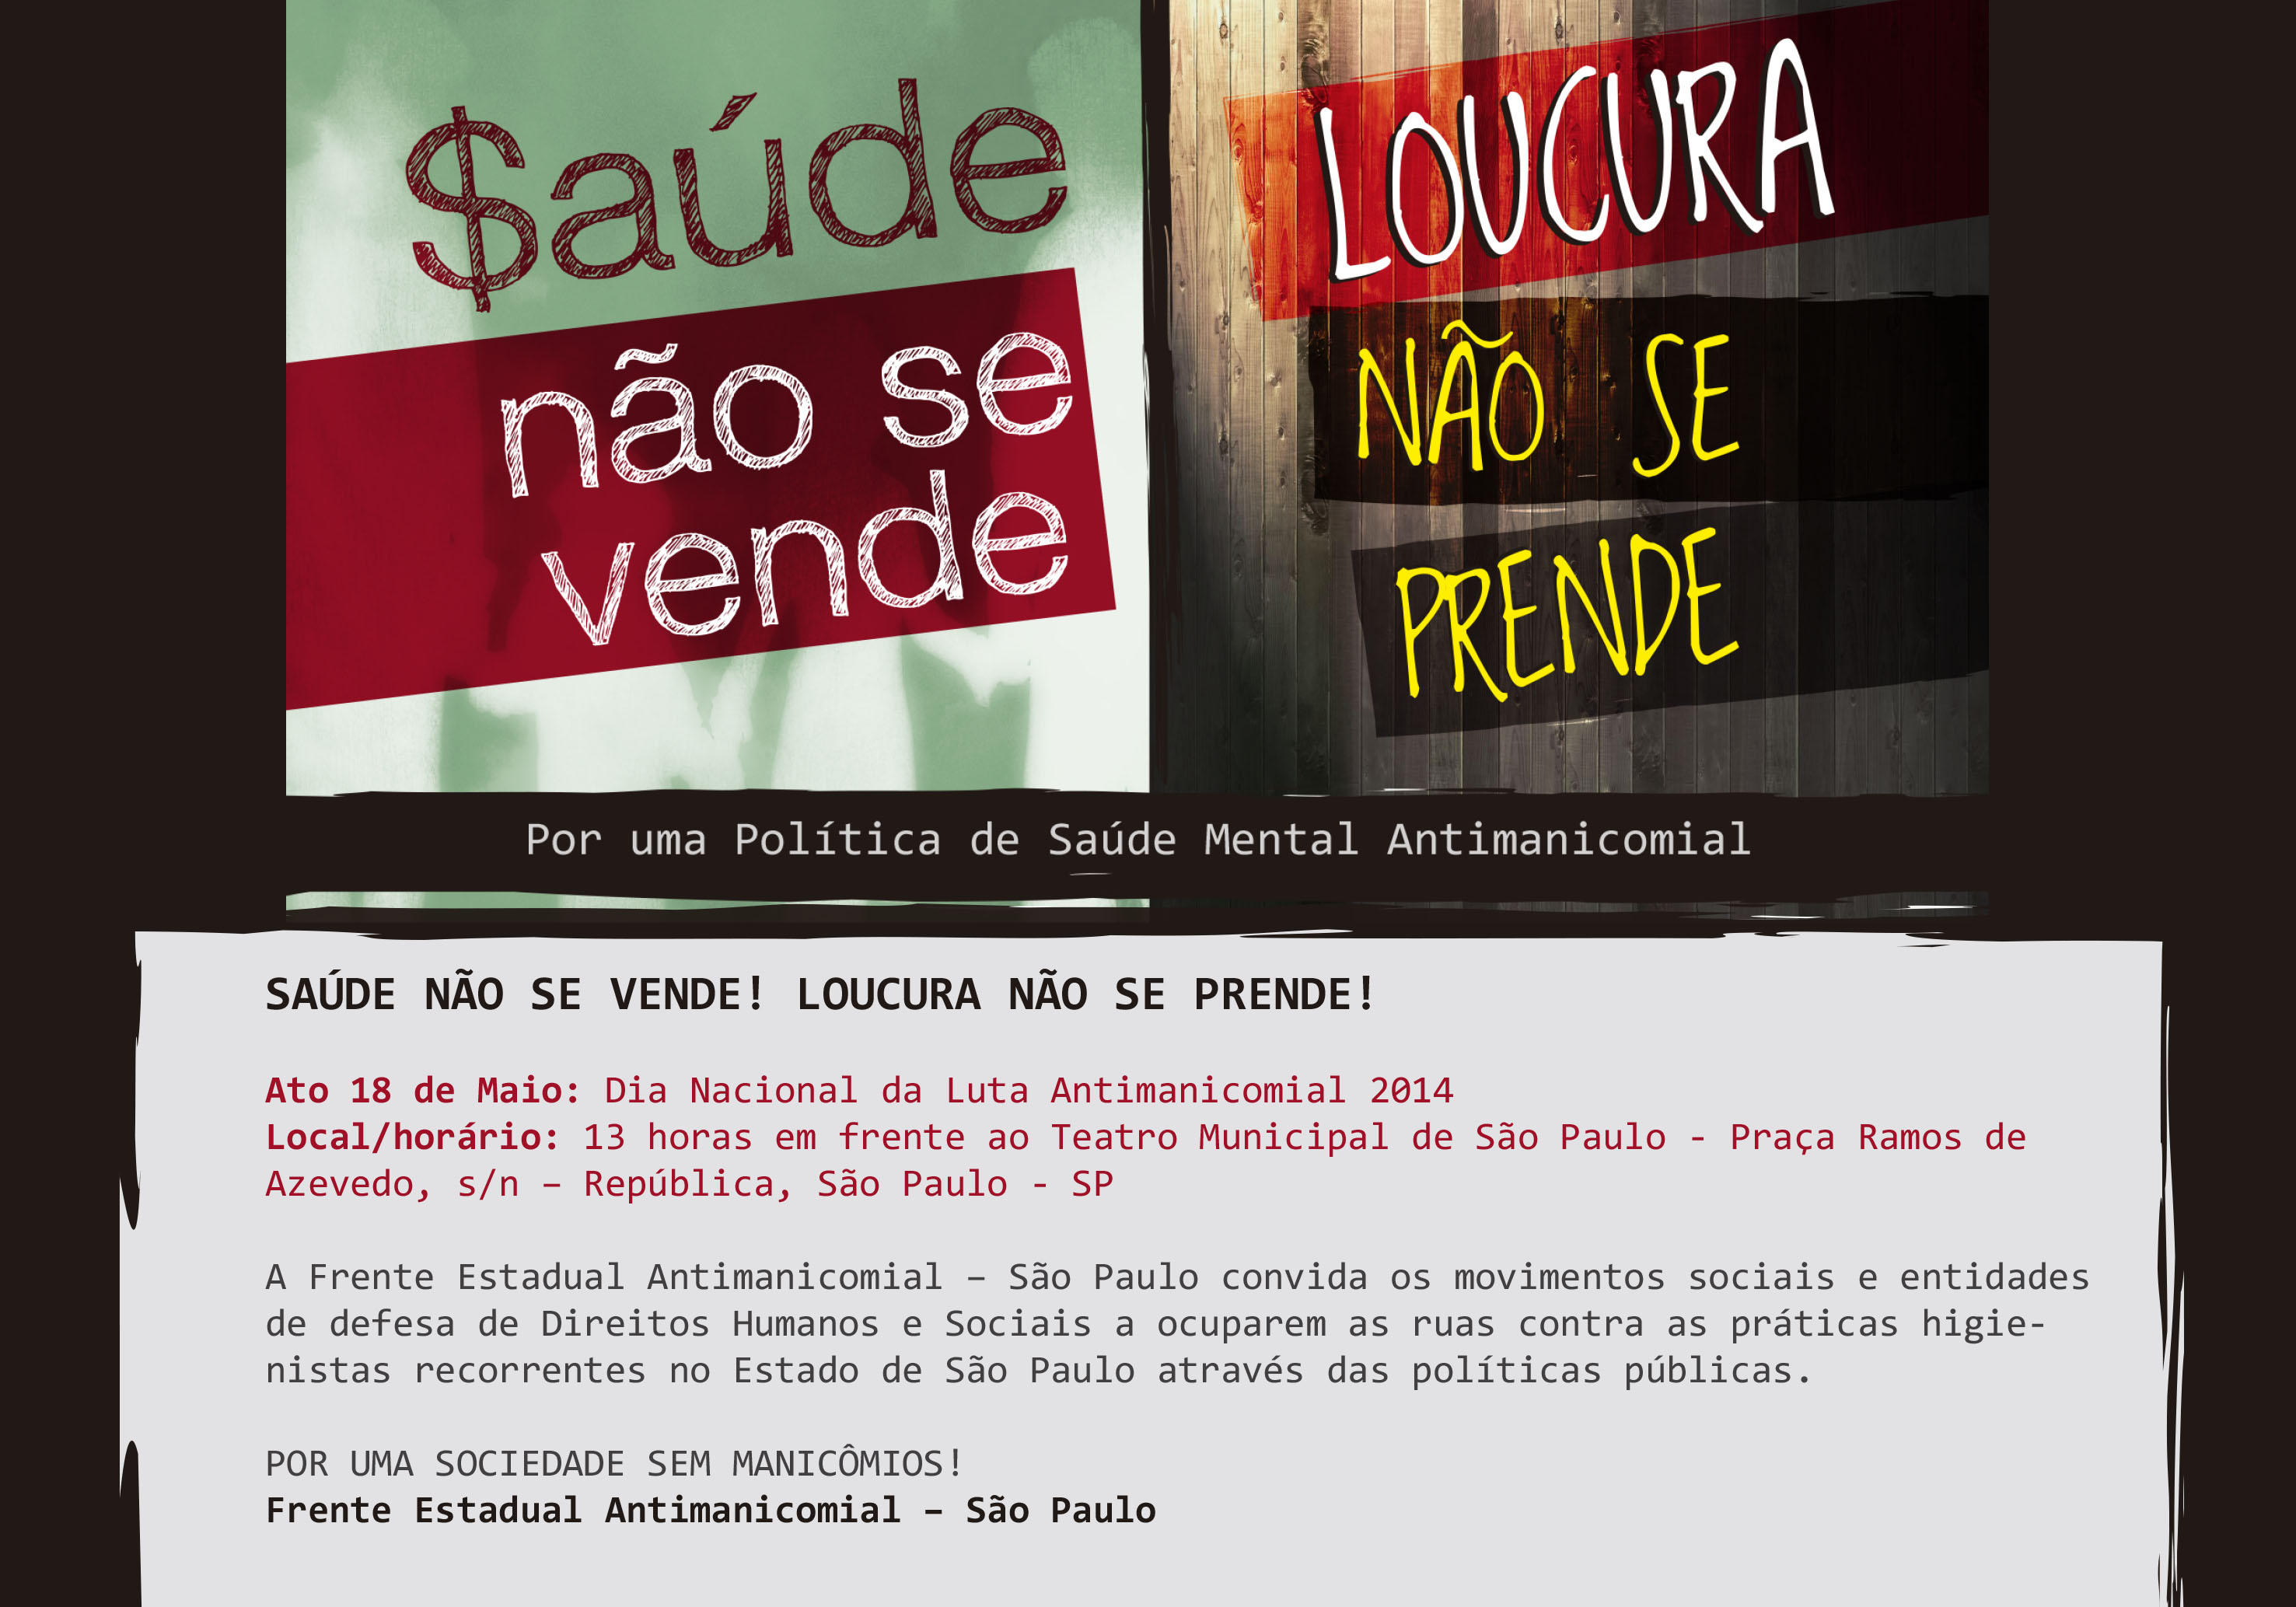 http://antimanicomialsp.files.wordpress.com/2014/04/cartaz.jpg